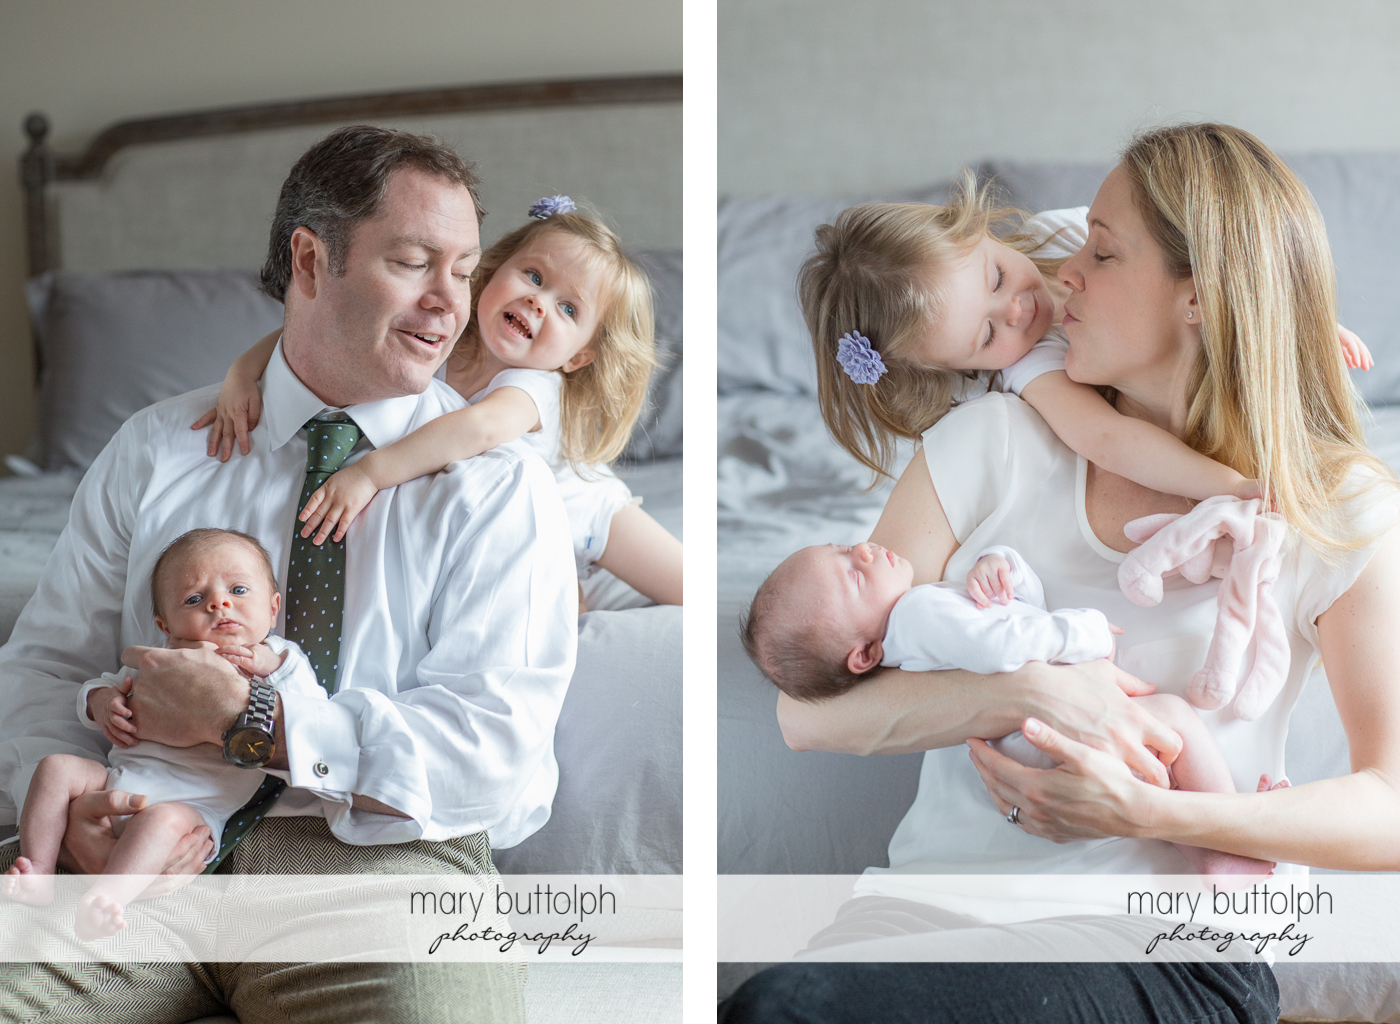 Baby with a puzzled look on his face poses with his dad and sister, and later with his mom at Skaneateles Newborn Photography